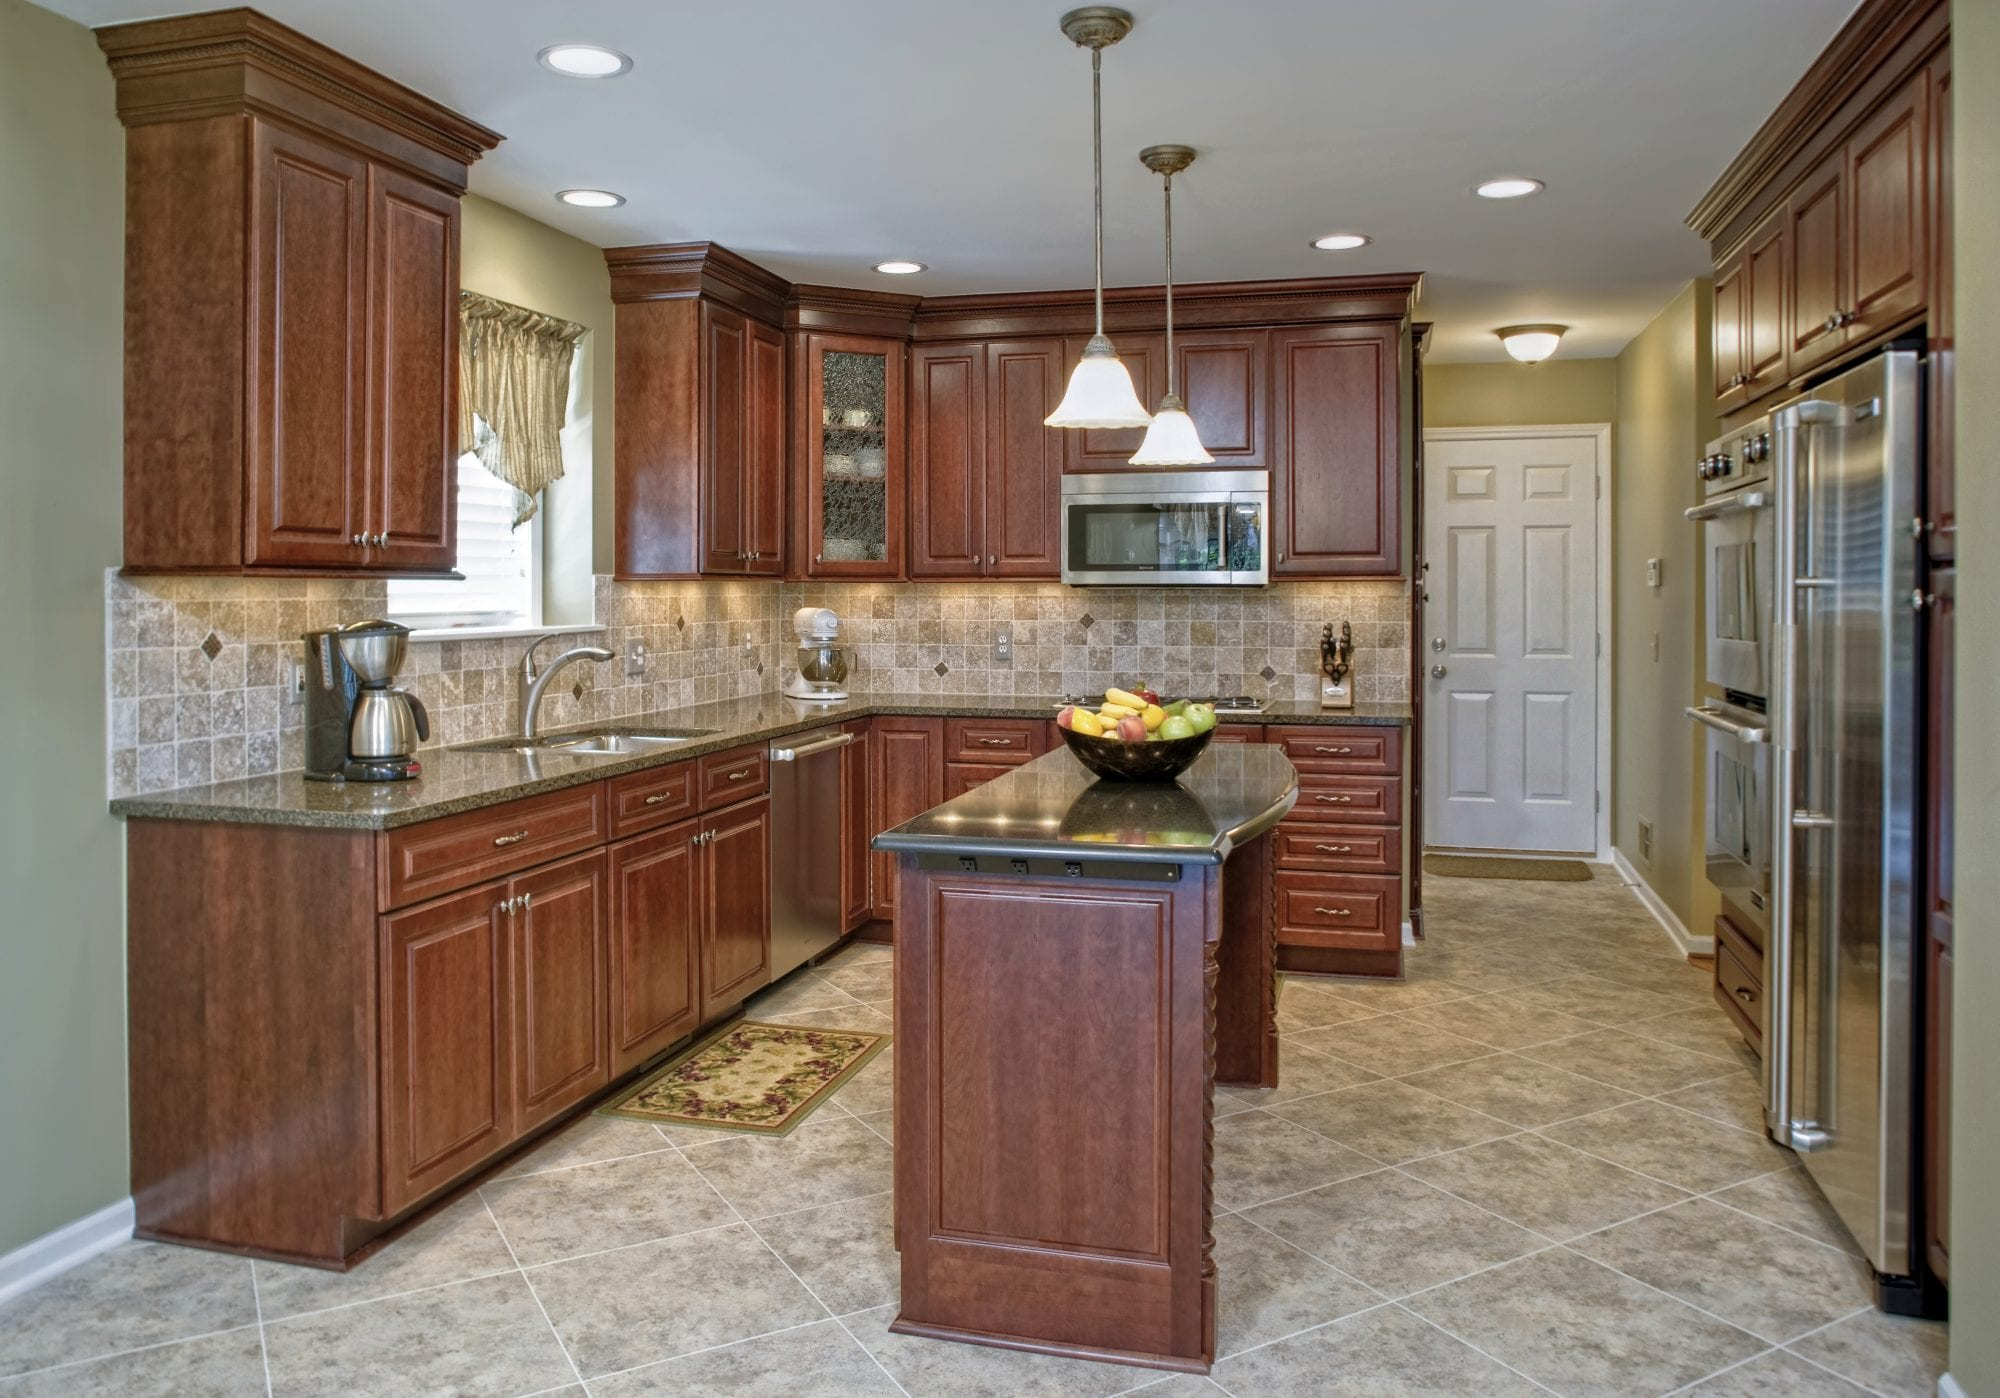 Columbia MD Kitchen Renovation and Remodeling | TradeMark Construction